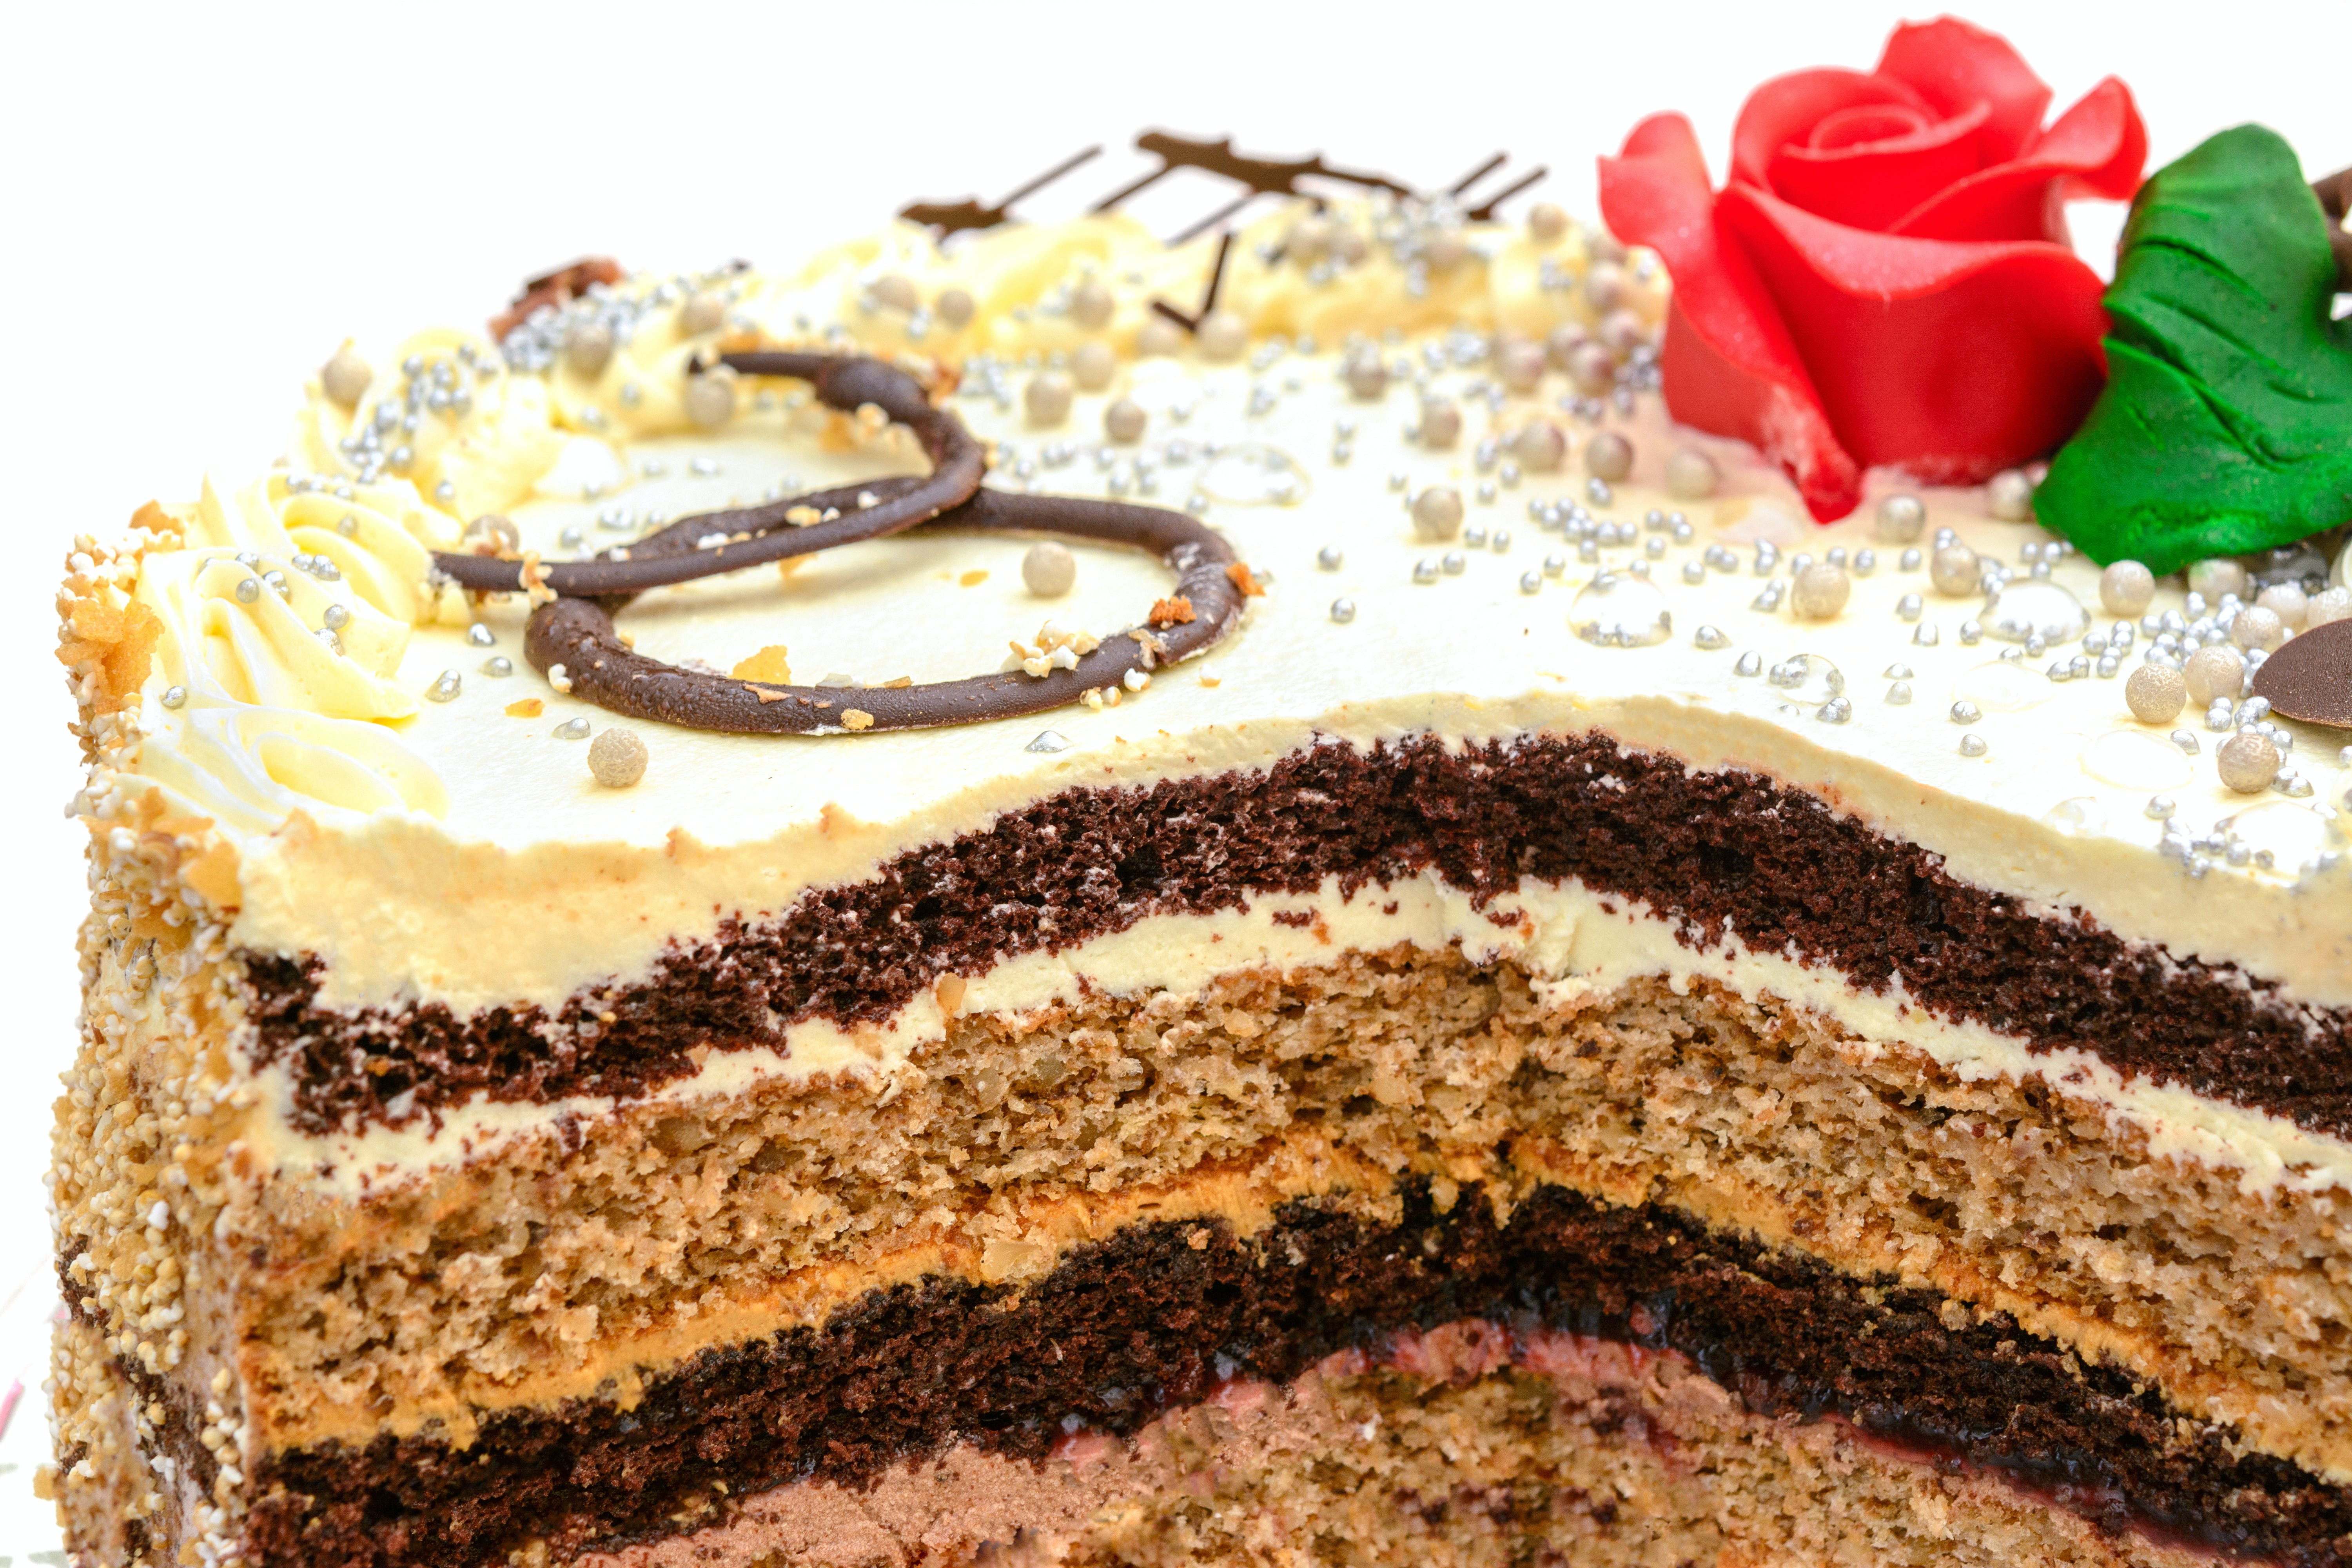 Three Layered Cake With Frosting